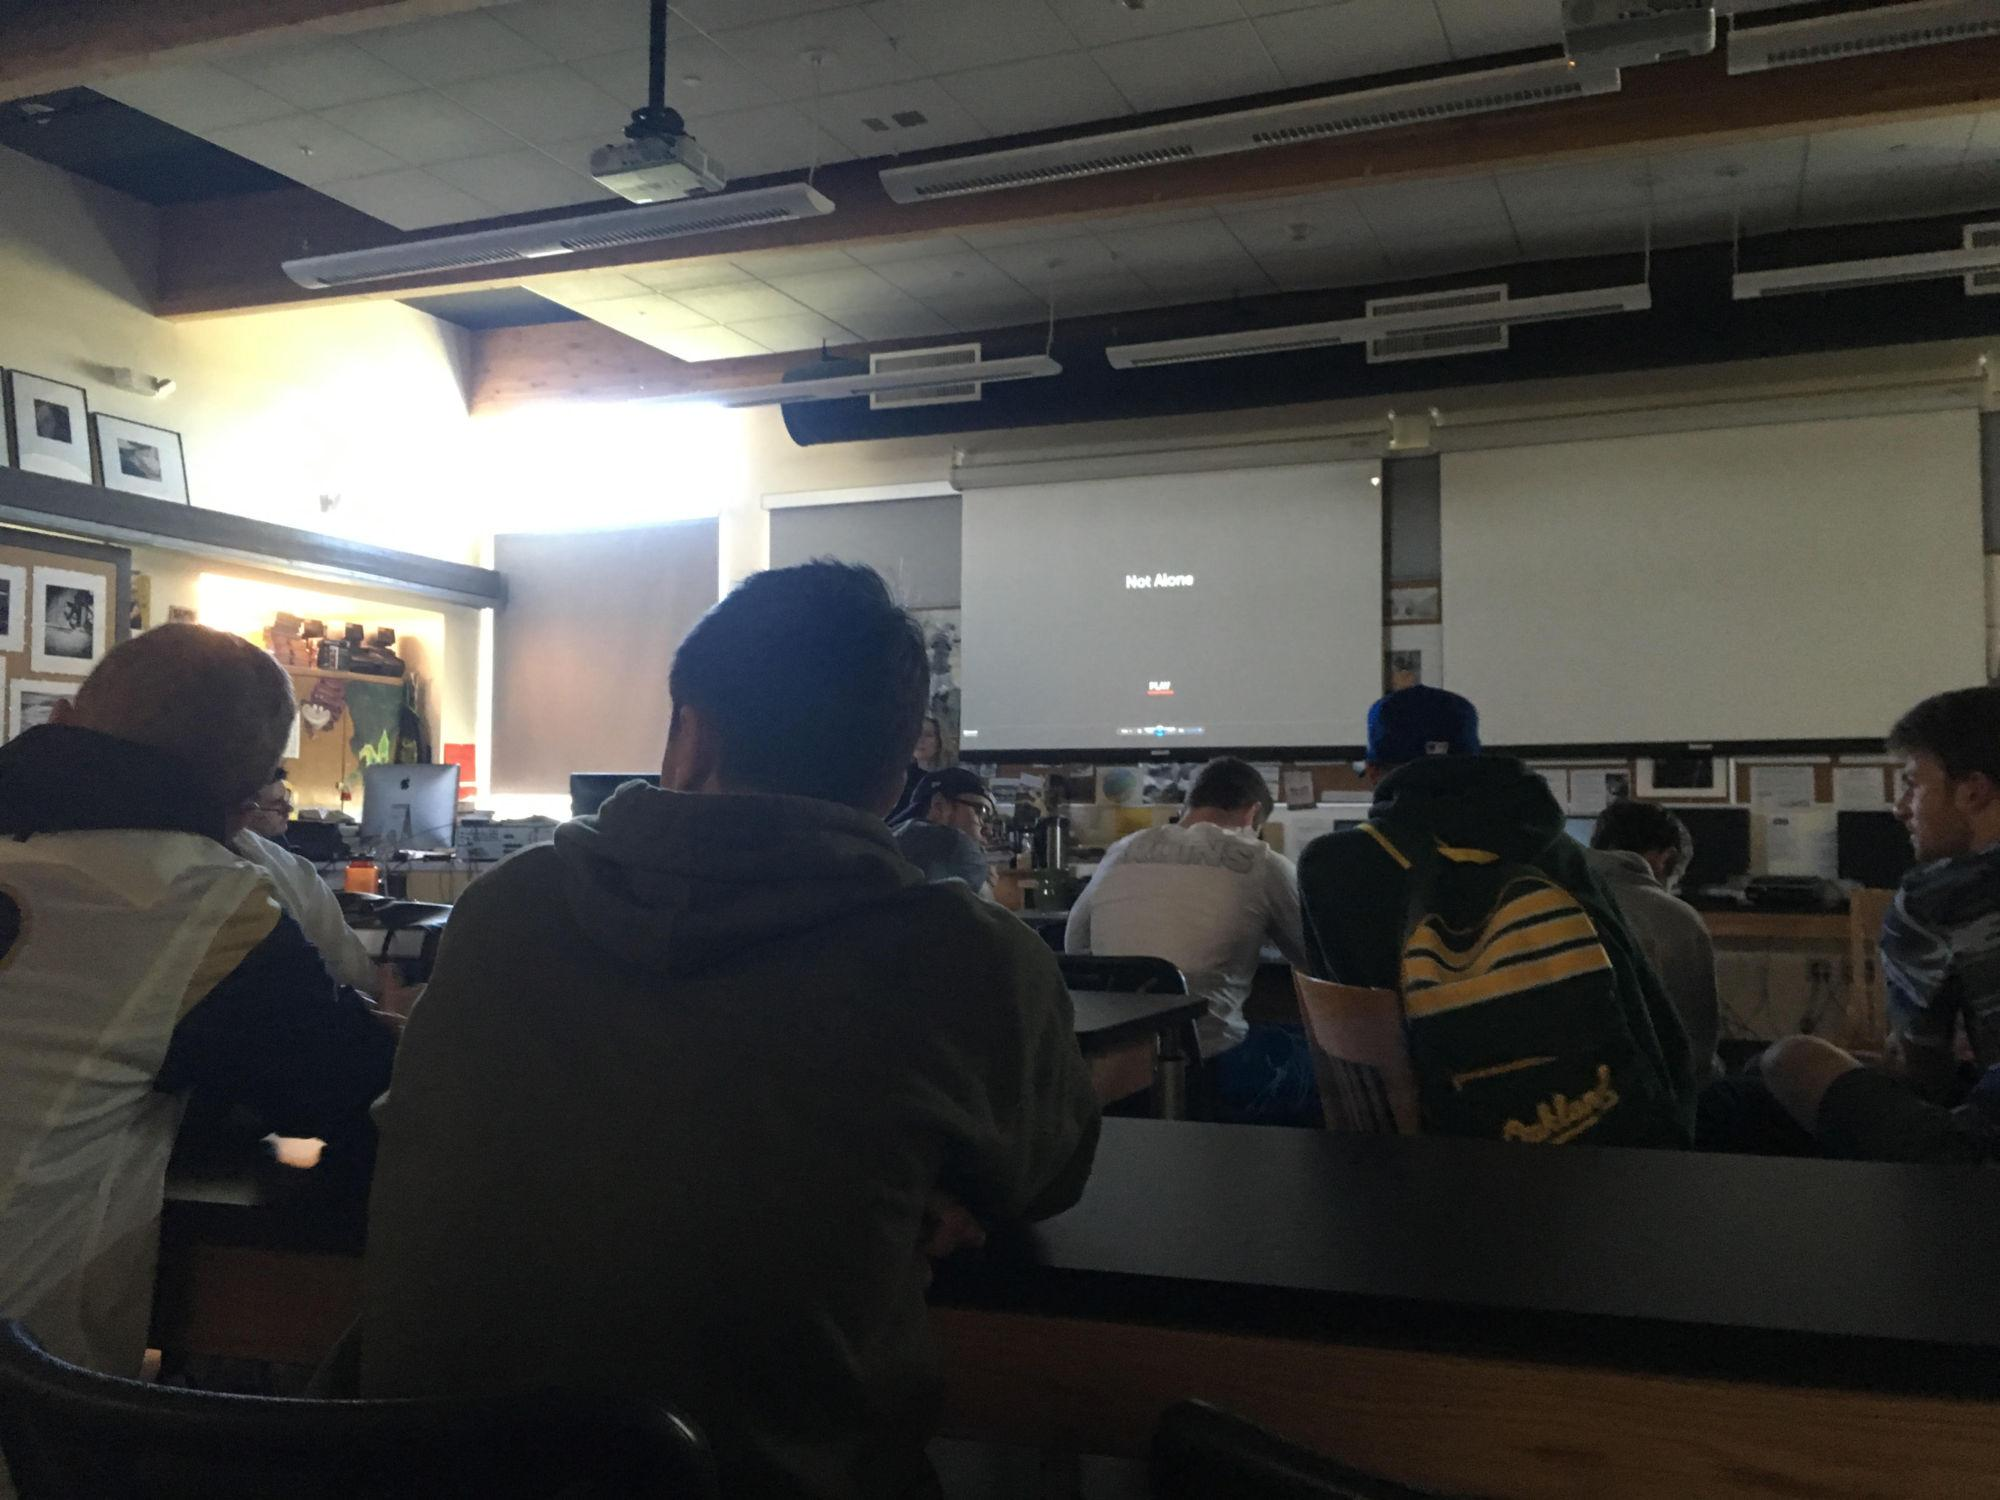 Students watch the screening of Not Alone in the Photo classroom